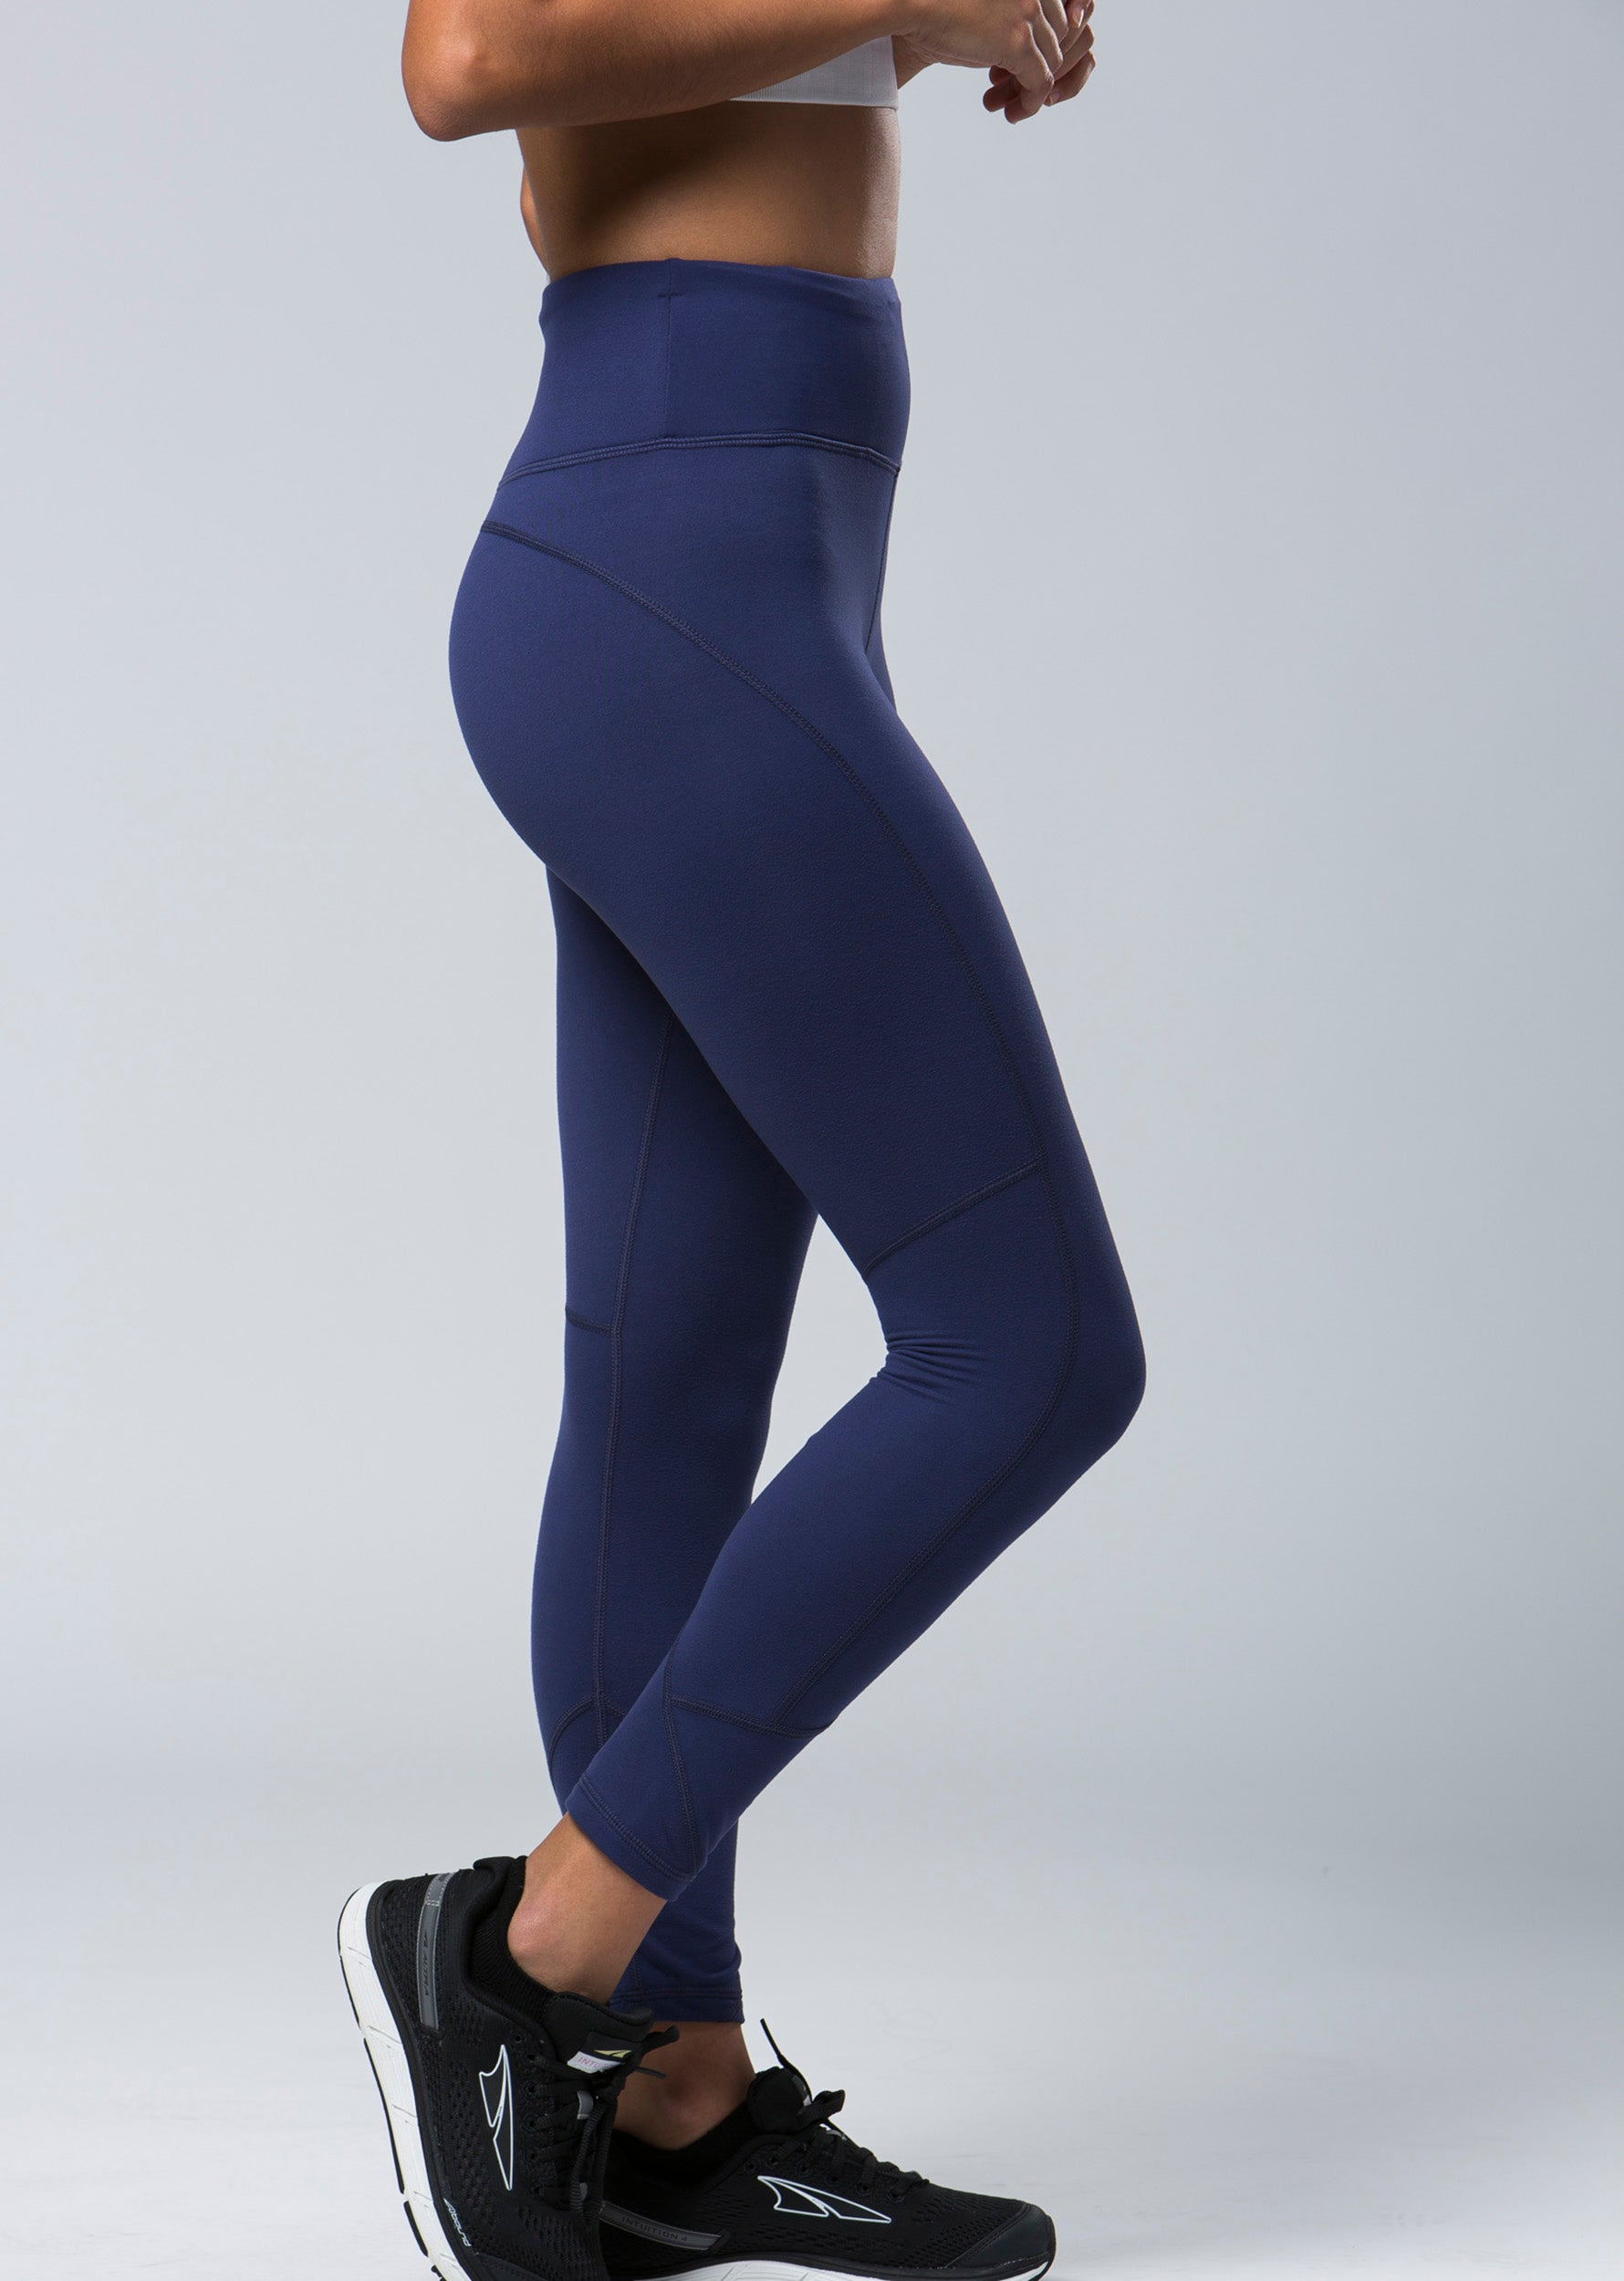 Excel 7/8 Legging - Patriot Blue